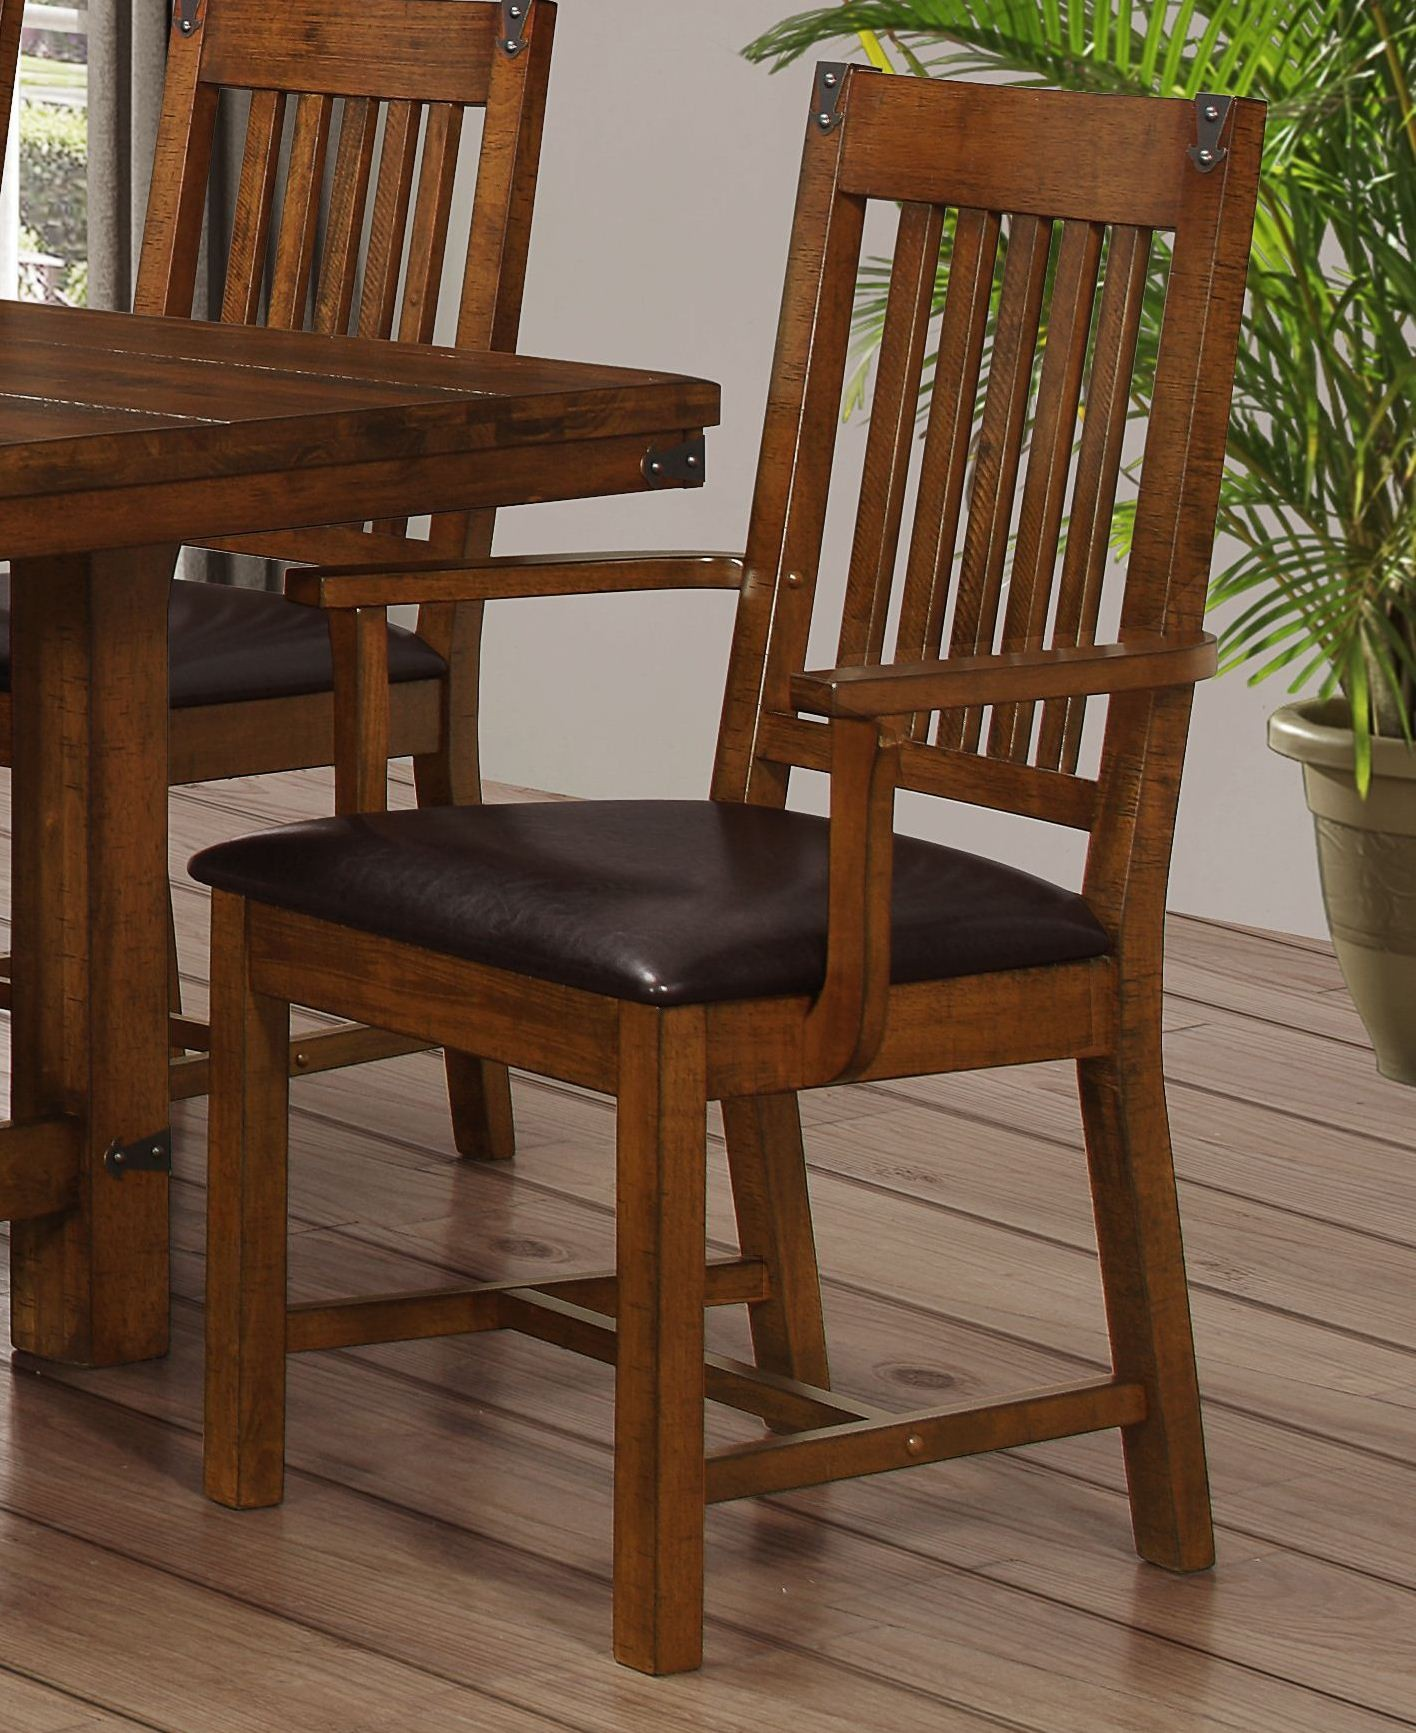 new classic buchanan d2514 21 dining height arm chair brown mahogony. Black Bedroom Furniture Sets. Home Design Ideas